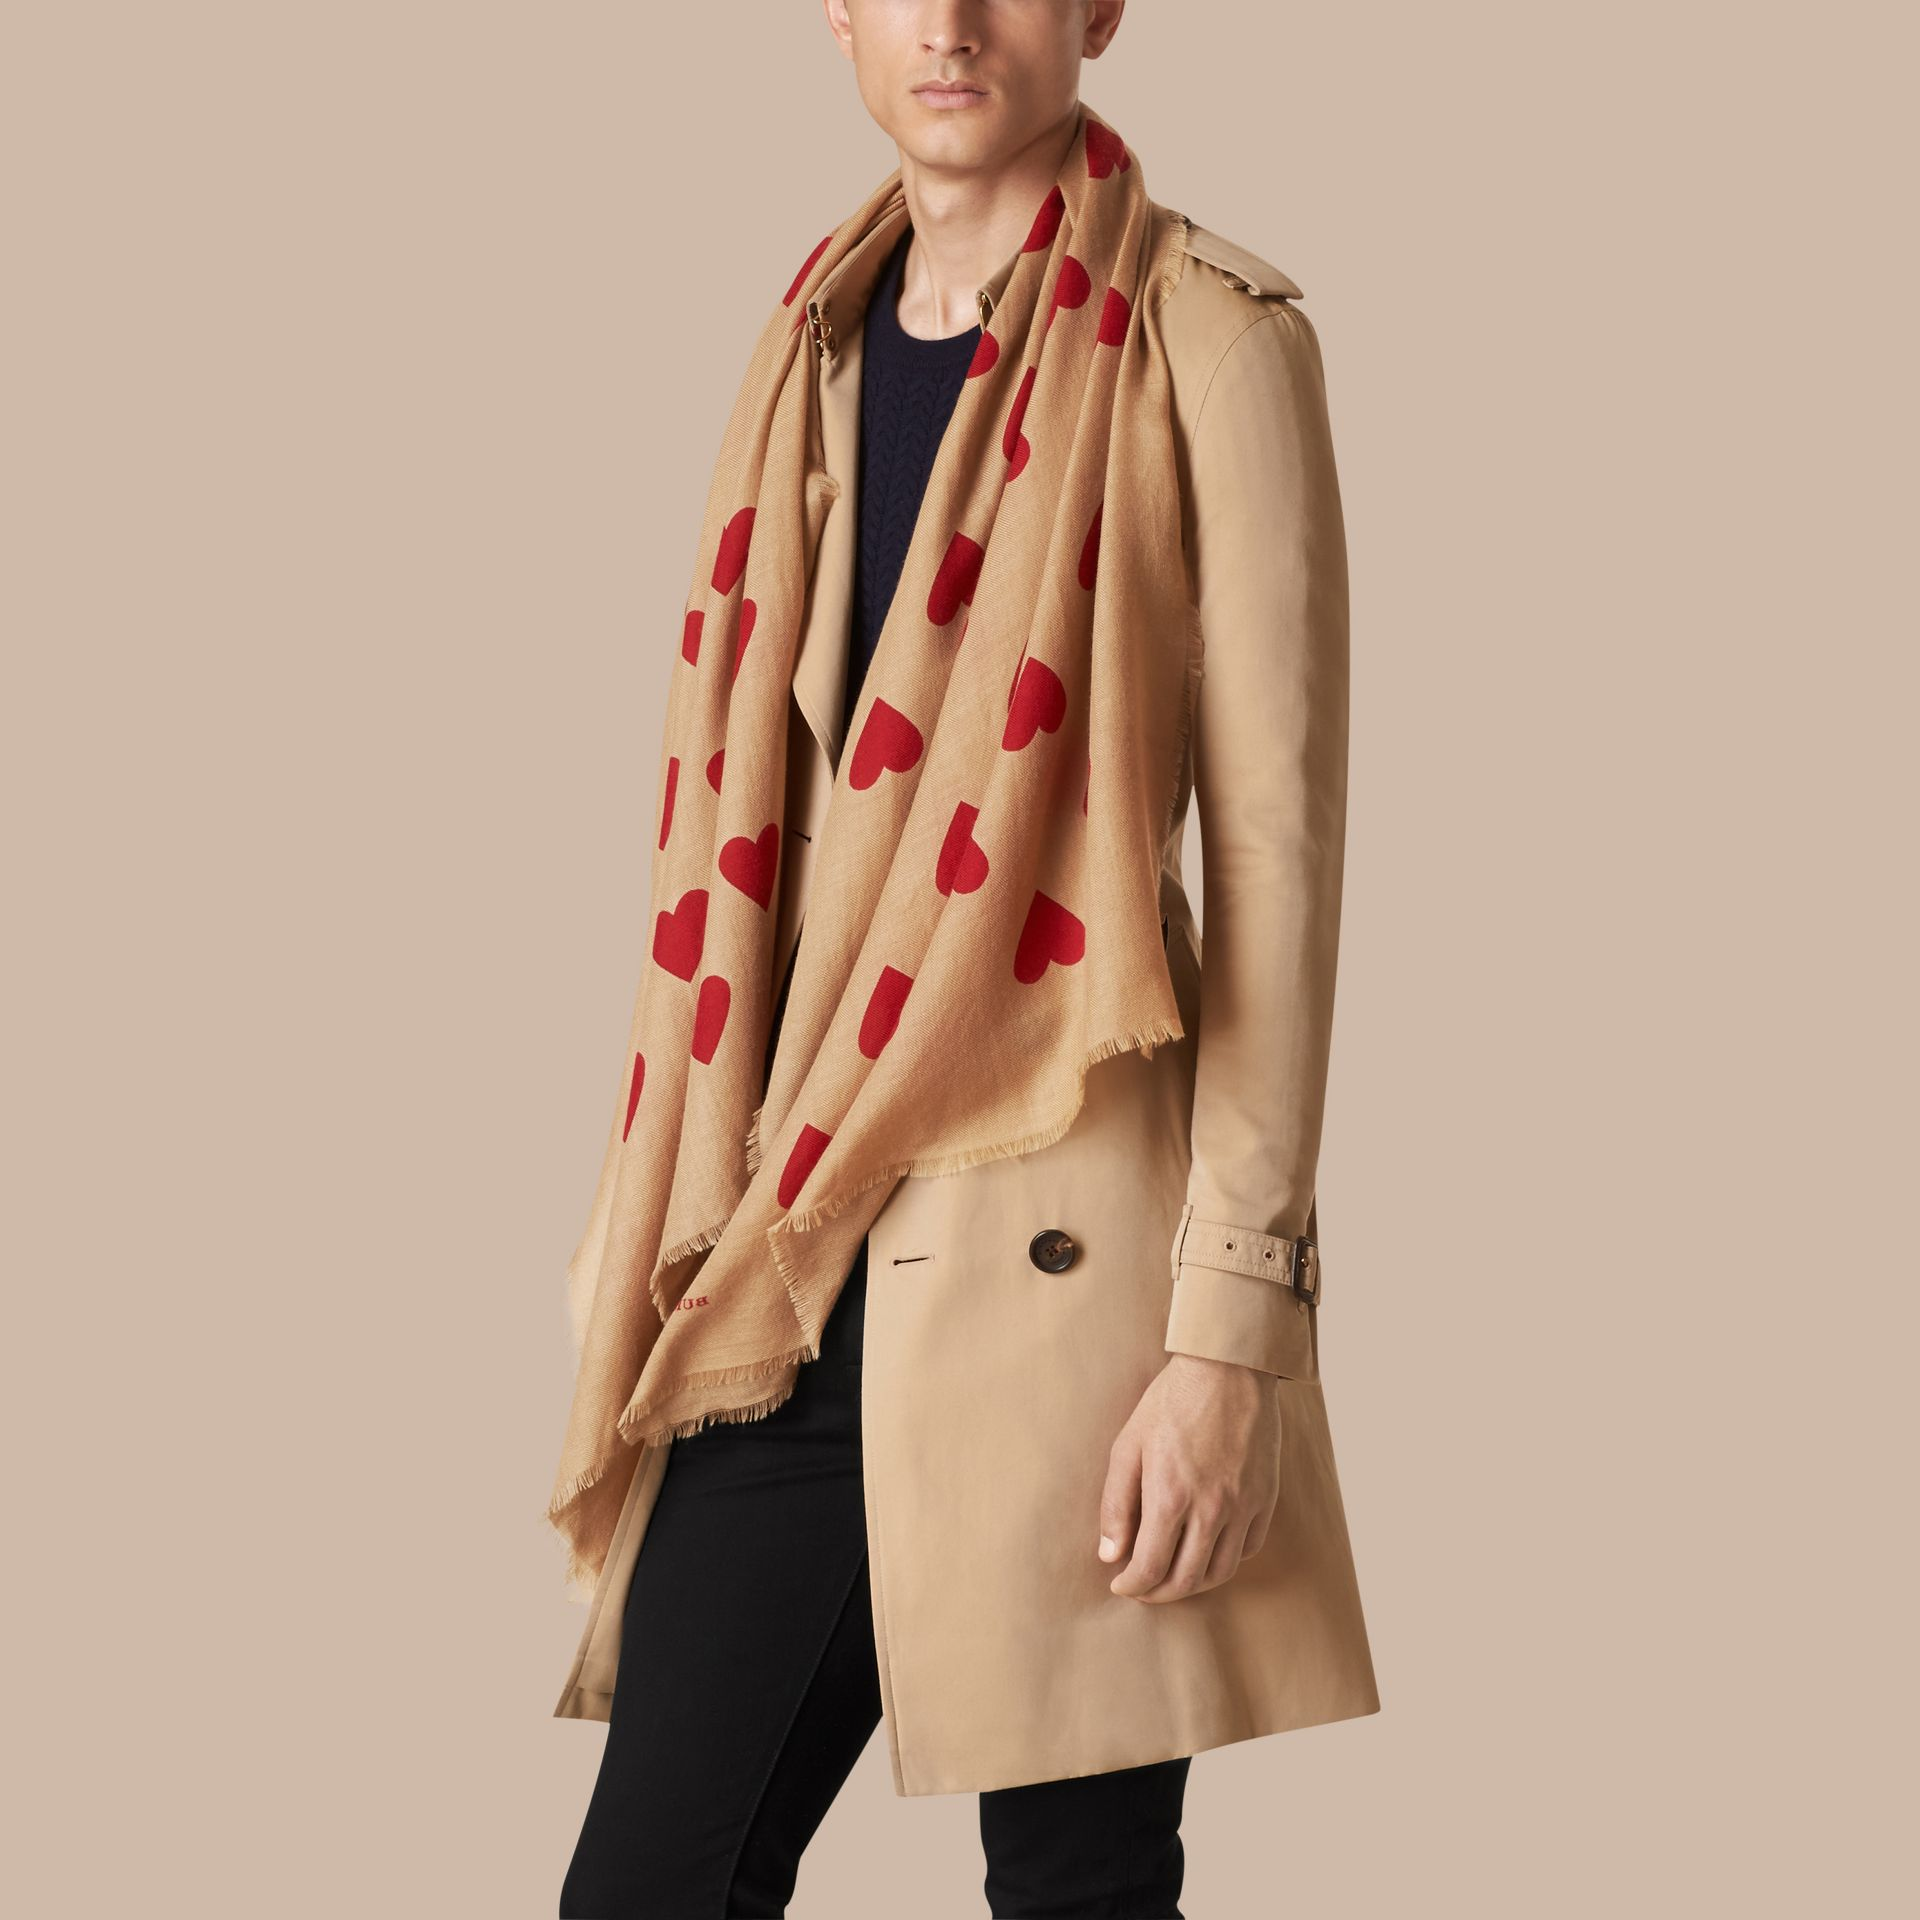 Camel/parade red The Lightweight Cashmere Scarf in Heart Print Camel/parade Red - gallery image 4